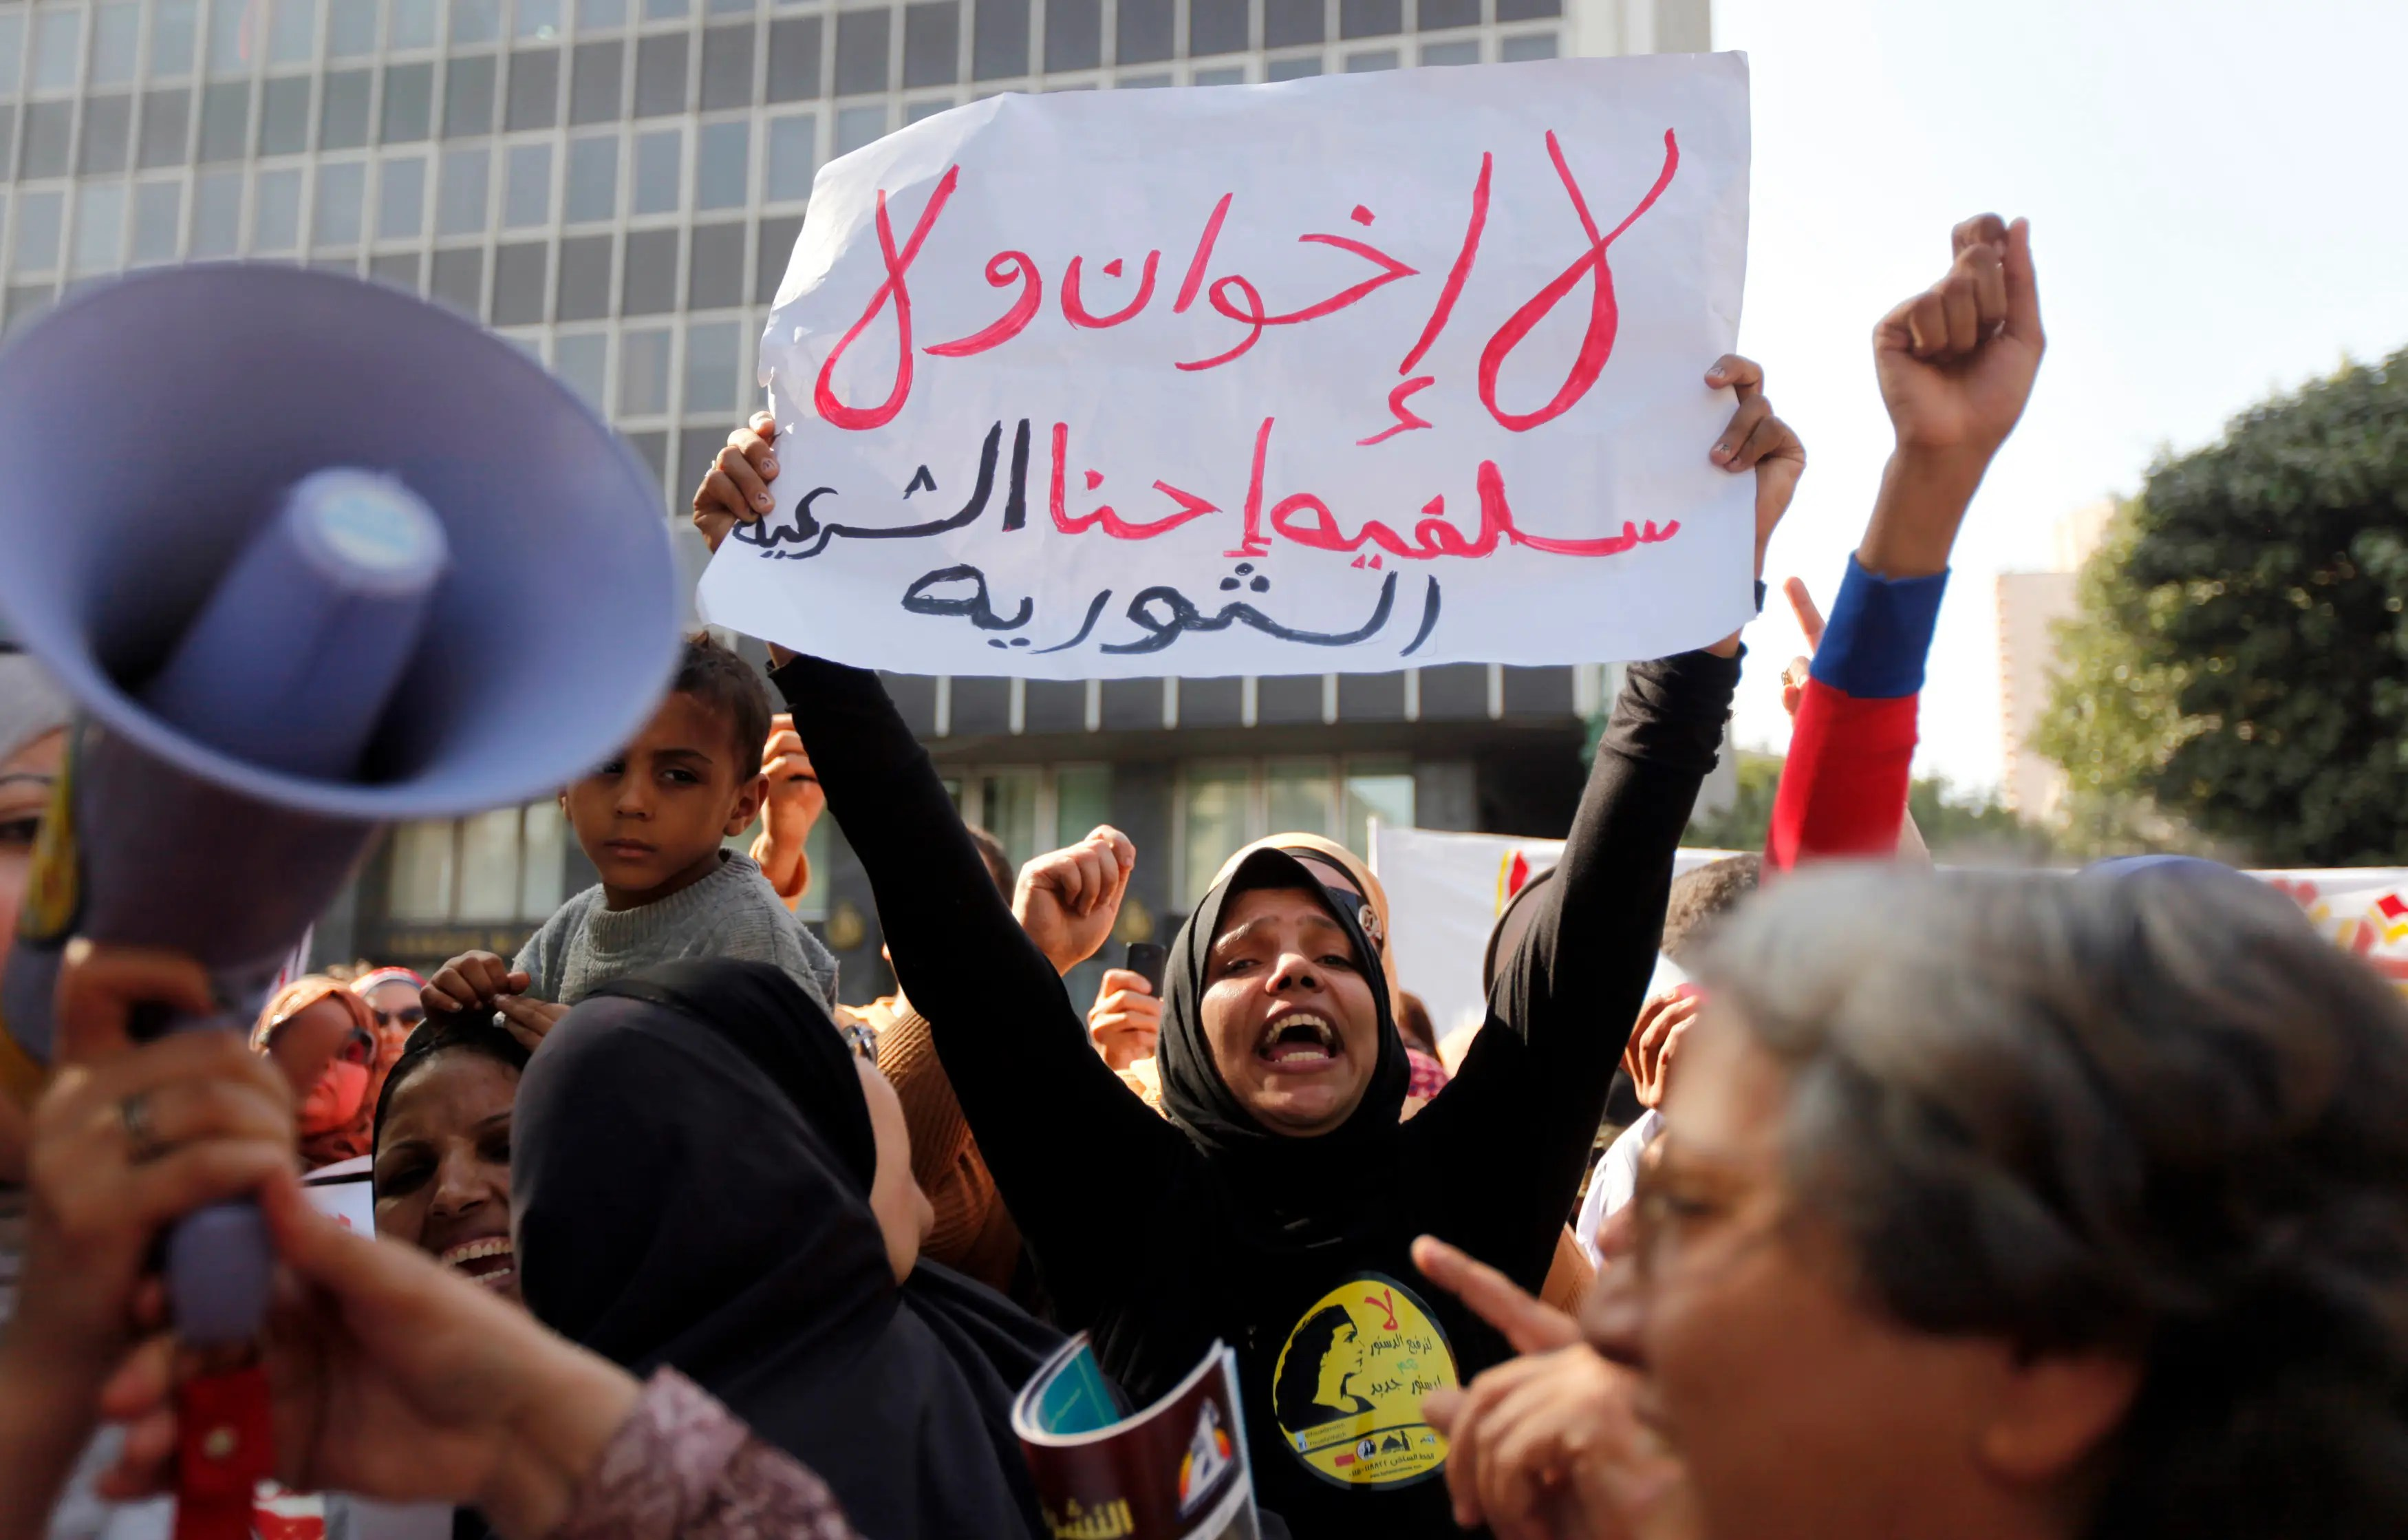 Spring 2011: YouTube plays an instrumental role in Arab Spring by helping disseminate messages of freedom and democracy. With YouTube, protestors were able to upload and share videos featuring protest and political commentary. Many of those videos ended up going viral, with the top ones receiving nearly 5.5 million views each.